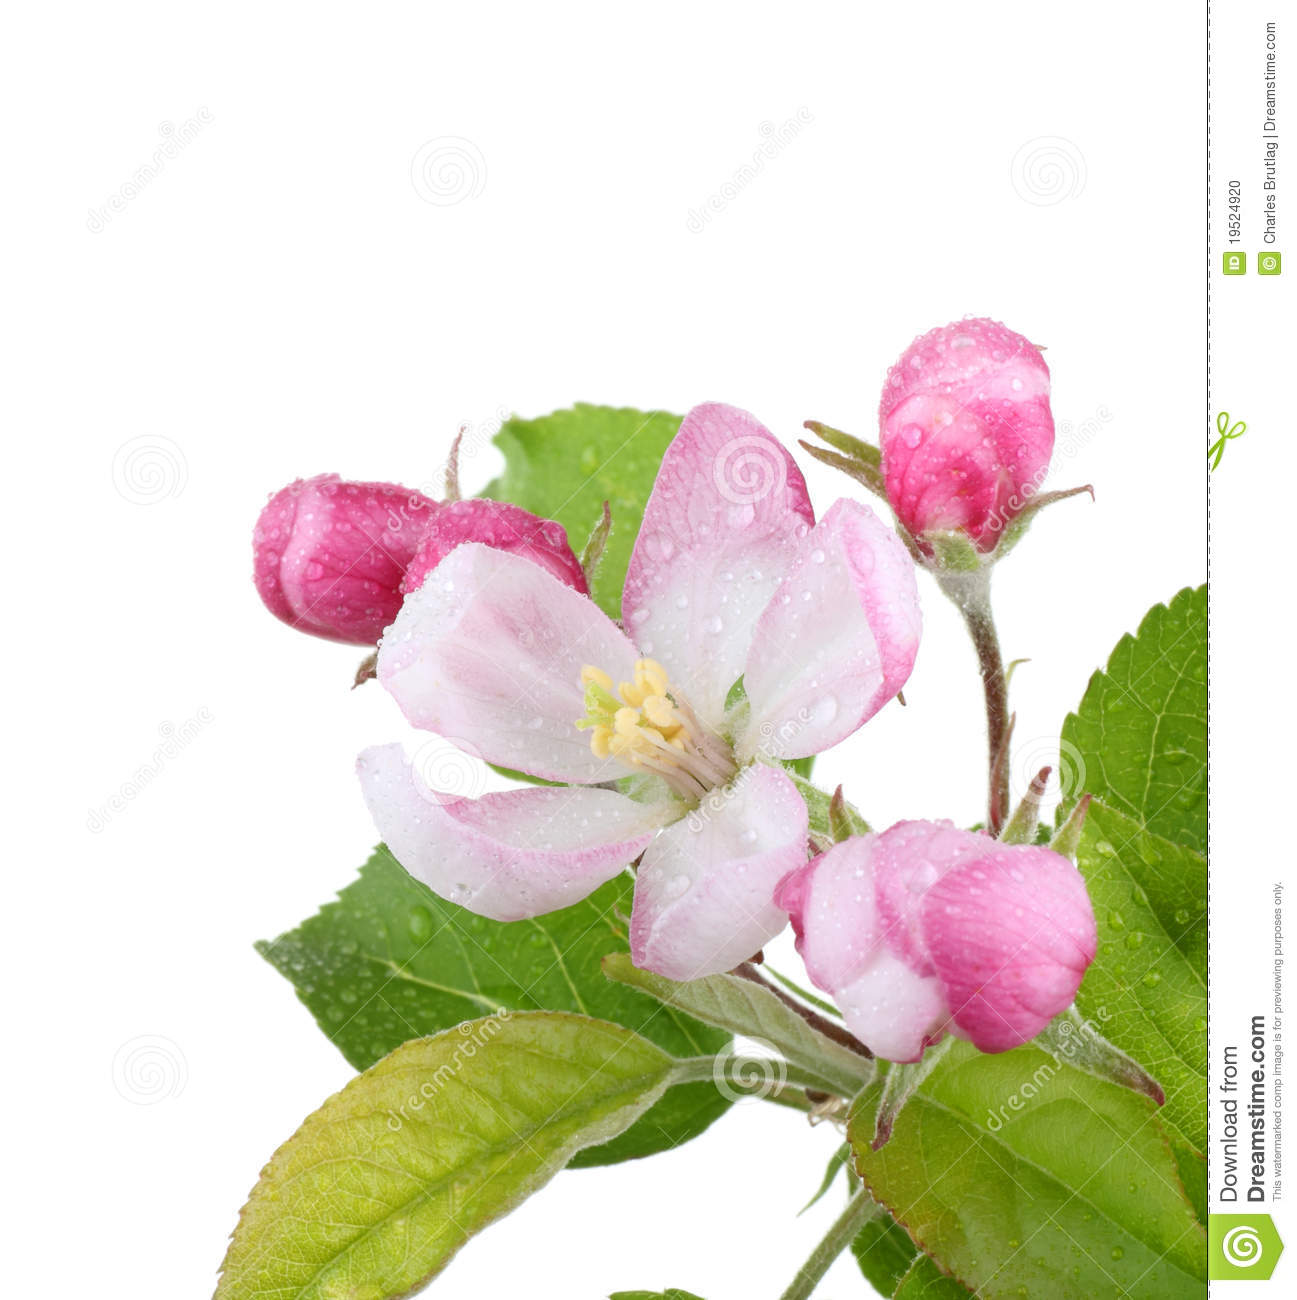 Apple Blossom Stock Photo Image 19524920